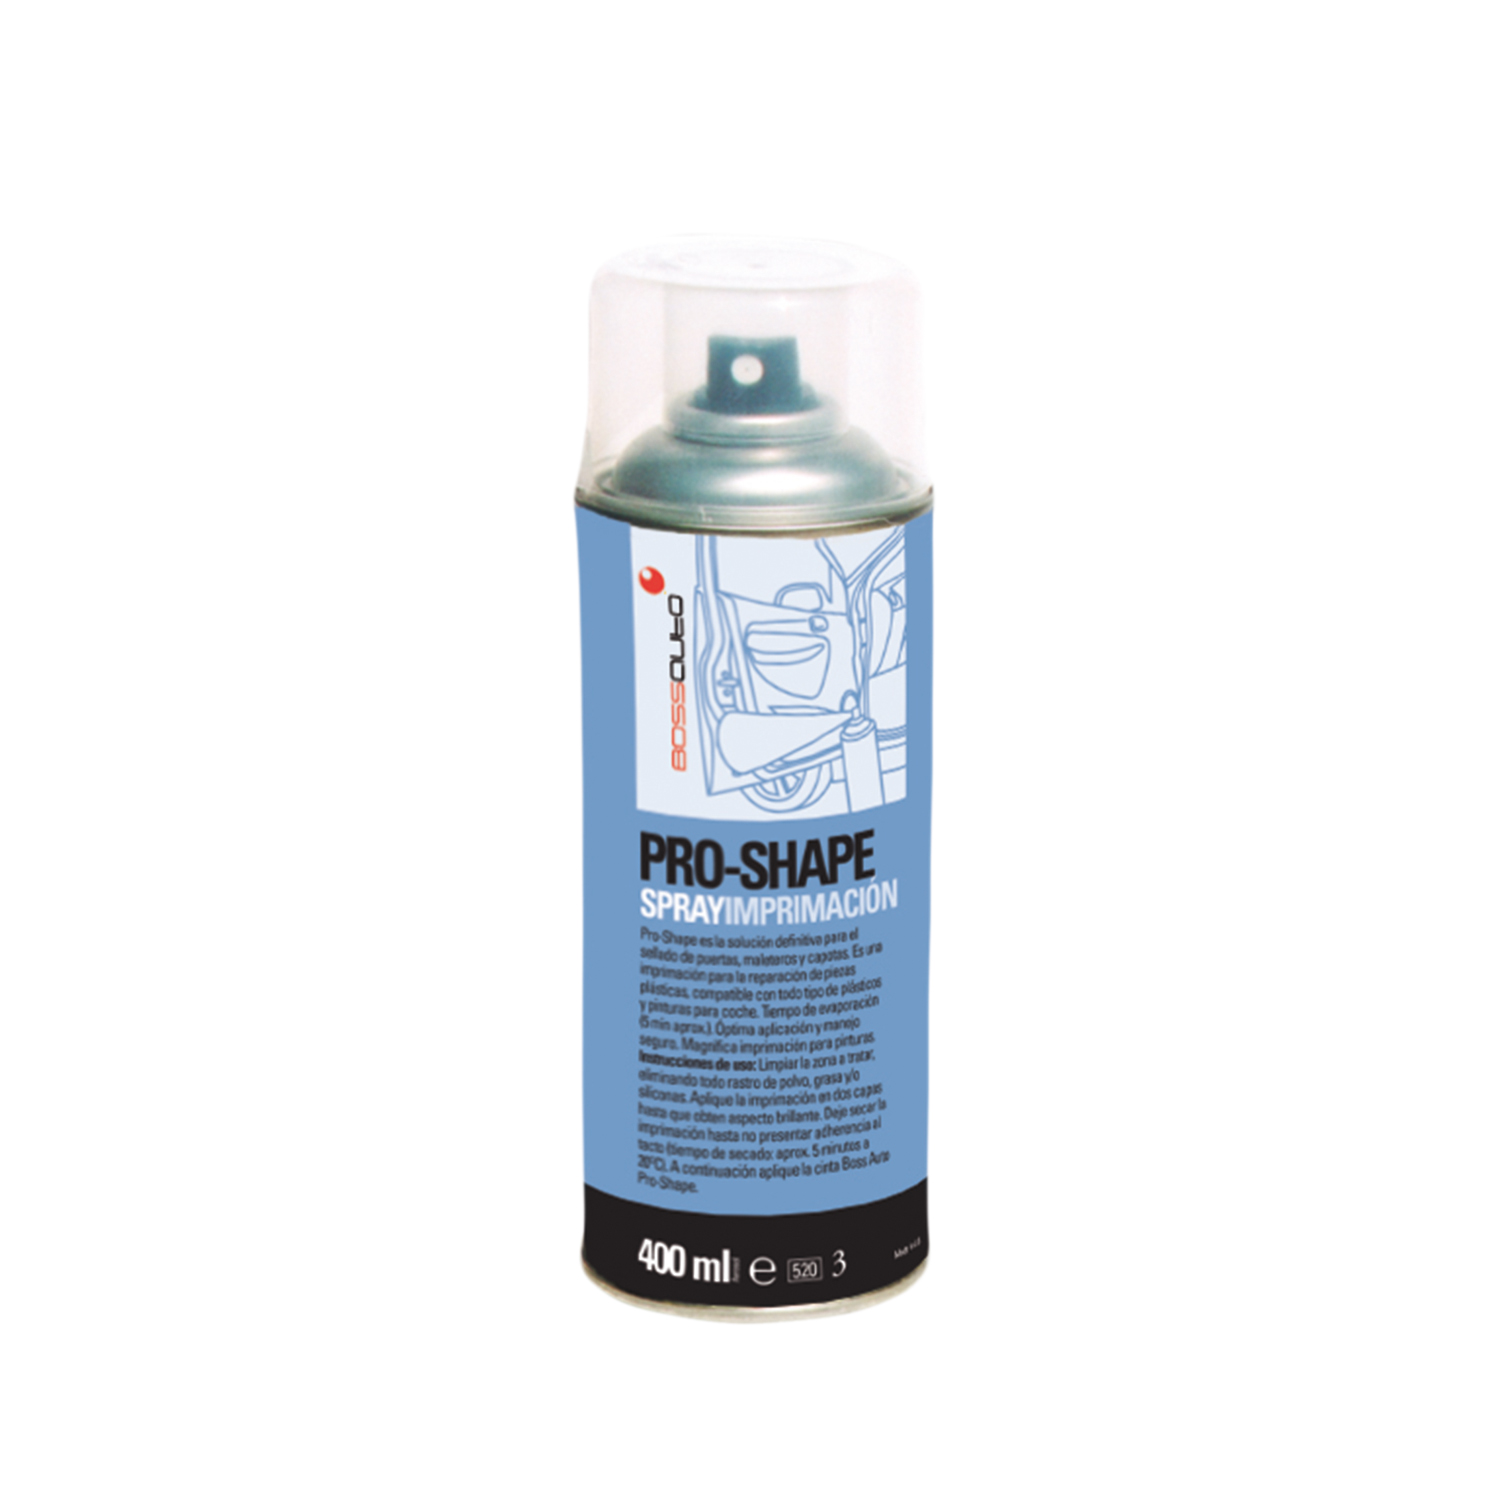 Spray primer pre Pro-Shape 400ml